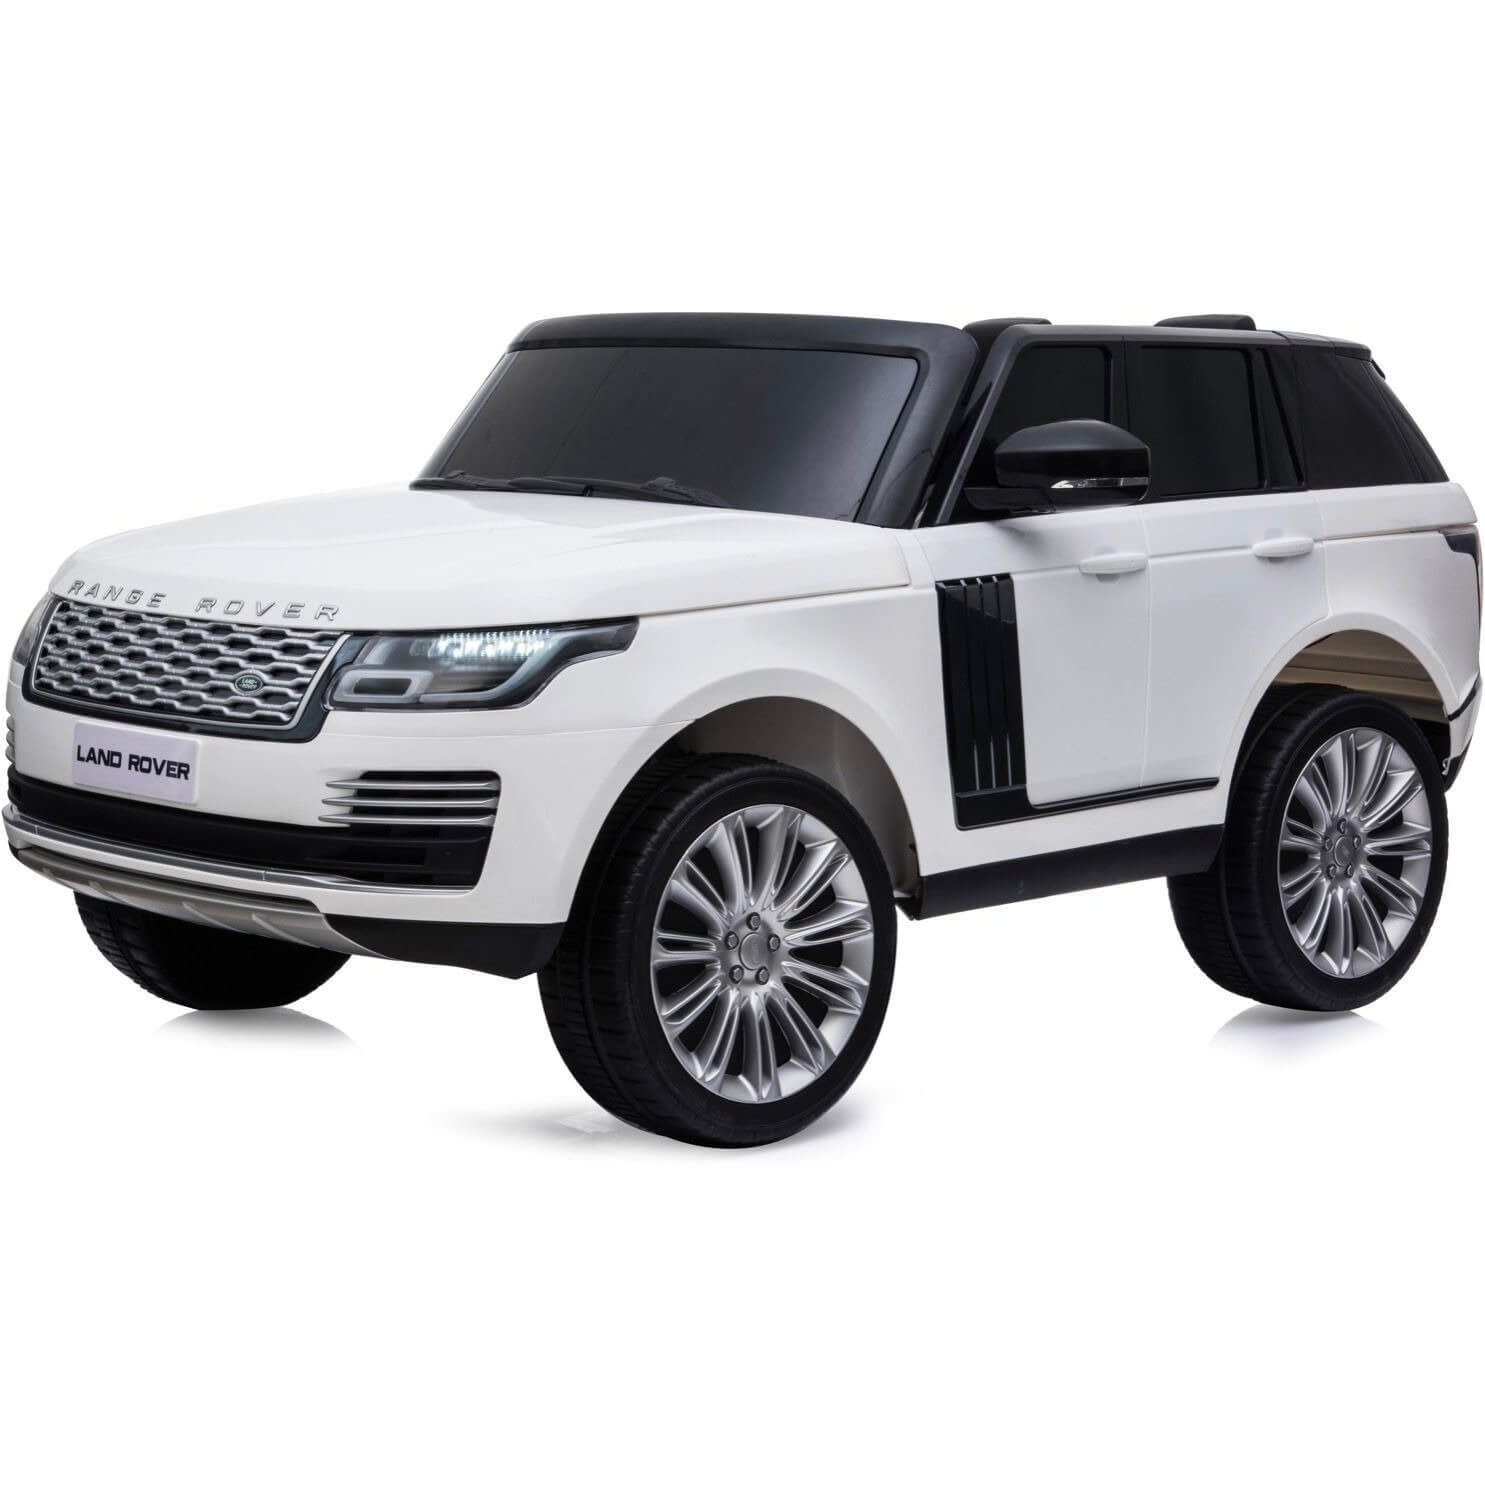 RIDE ON  12 V ELITE  LICENSED RANGE ROVER VOGUE HSE 4WD 2 SEATER  SUV